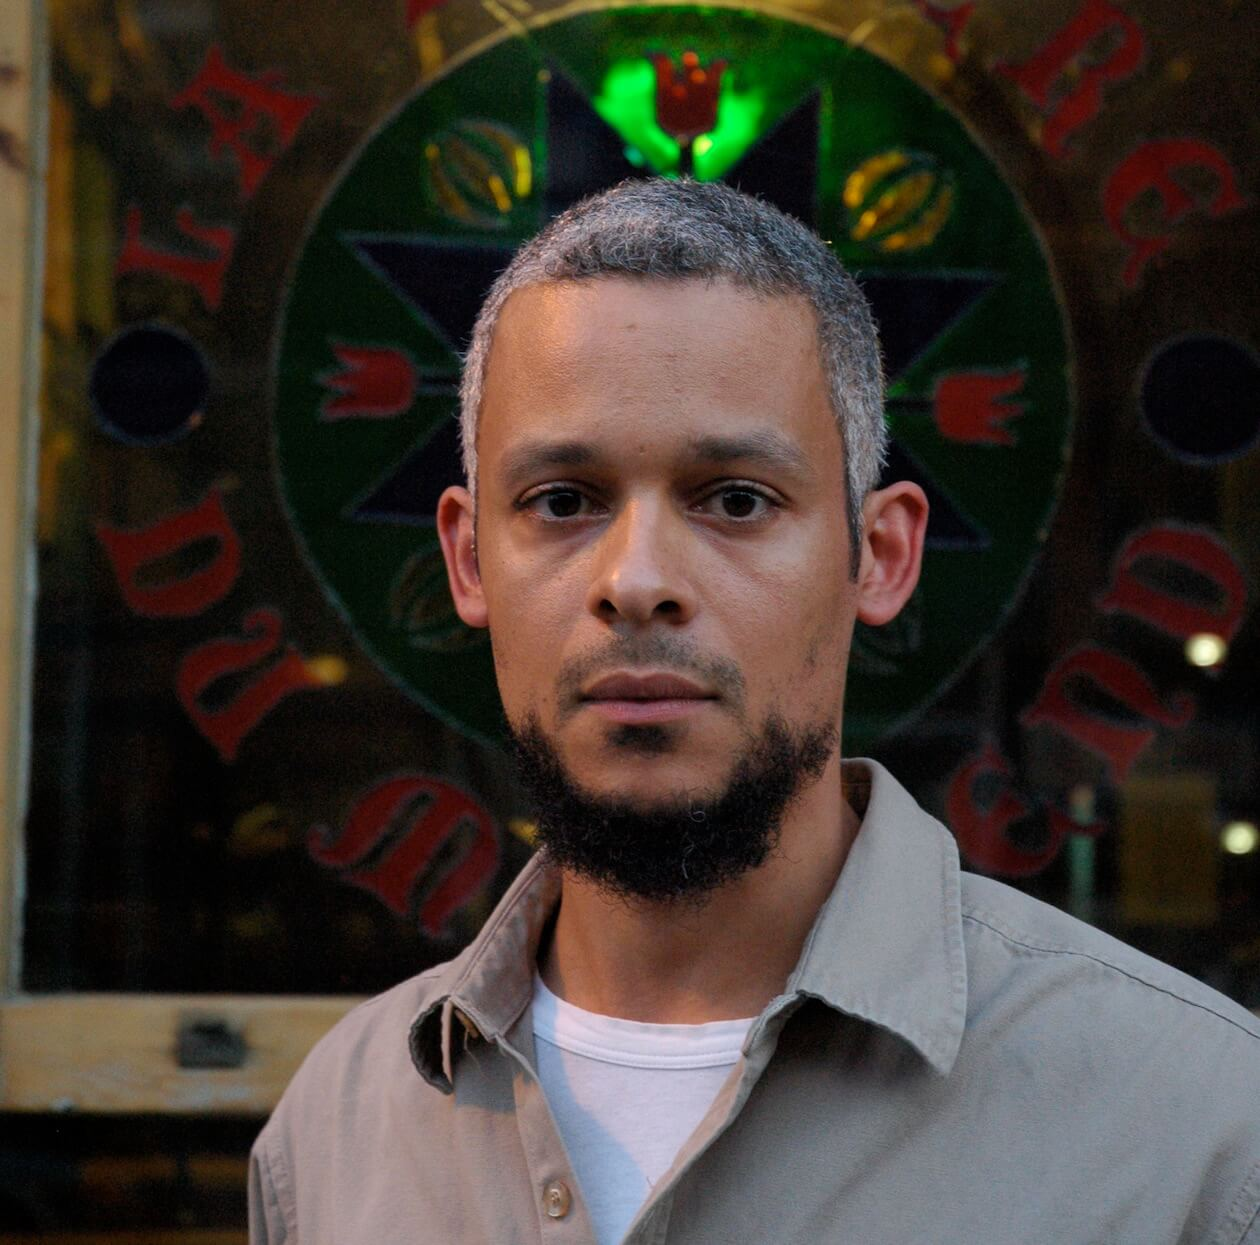 Kaie - is a poet, novelist, and sound performer. His emphasis, when performing vocally and electronically, is on narrative, diaspora, and noise. His upcoming book of poetry, Magnetic Equator, will be published by Penguin Canada in Spring 2019. Kaie is the author of two sound-poetry recordings, two books of poetry, and one novel, Accordéon, which was nominated for the Amazon First Novel Award. He is now completing his first collection of short fiction, which leaps time and latitude, and divides its consciousness between North America and the Caribbean.Kaie will be featuring at the APS Sydney Finals.Join Kaie at two events; A Chat with Kaie Kellough and Masterclass with Kaie Kellough.